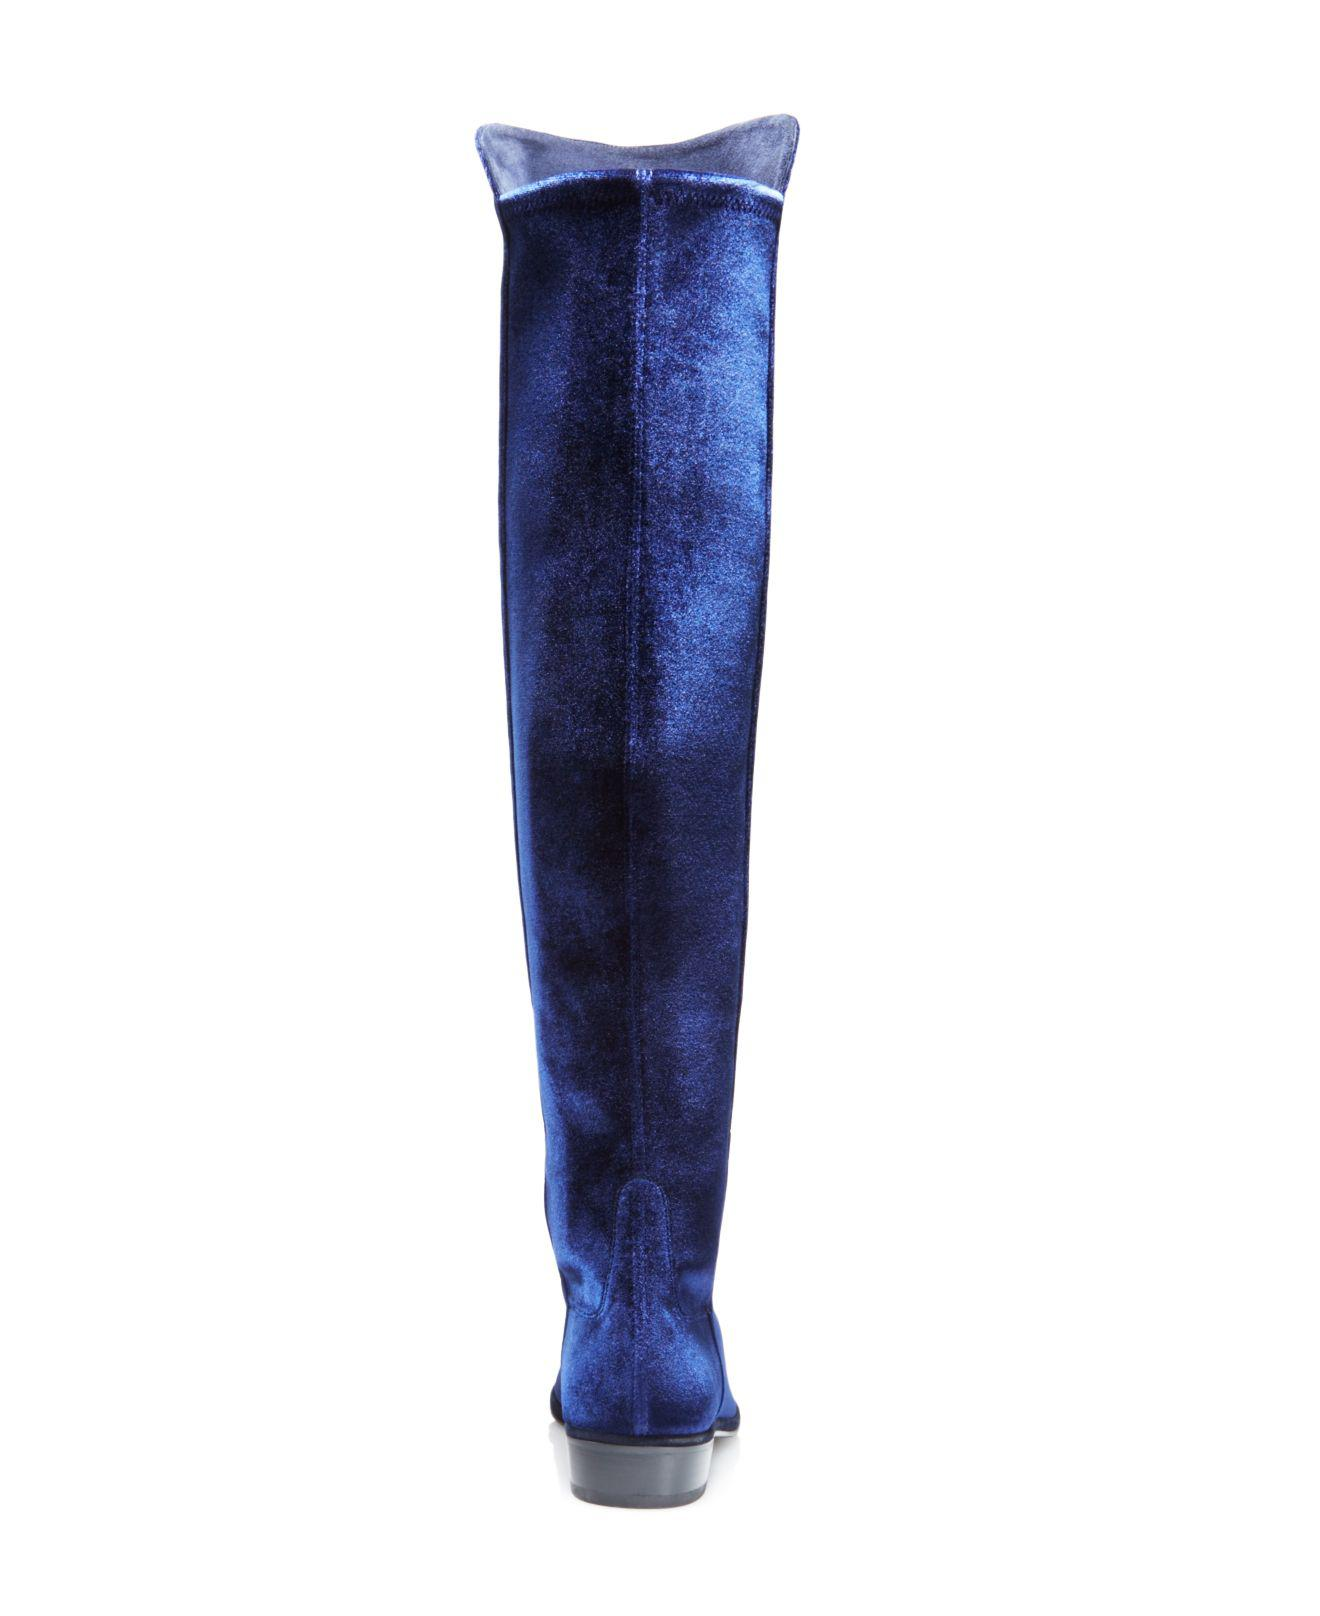 c09a5368f17 Lyst - Stuart Weitzman Allgood Velvet Over-the-knee Boots in Blue